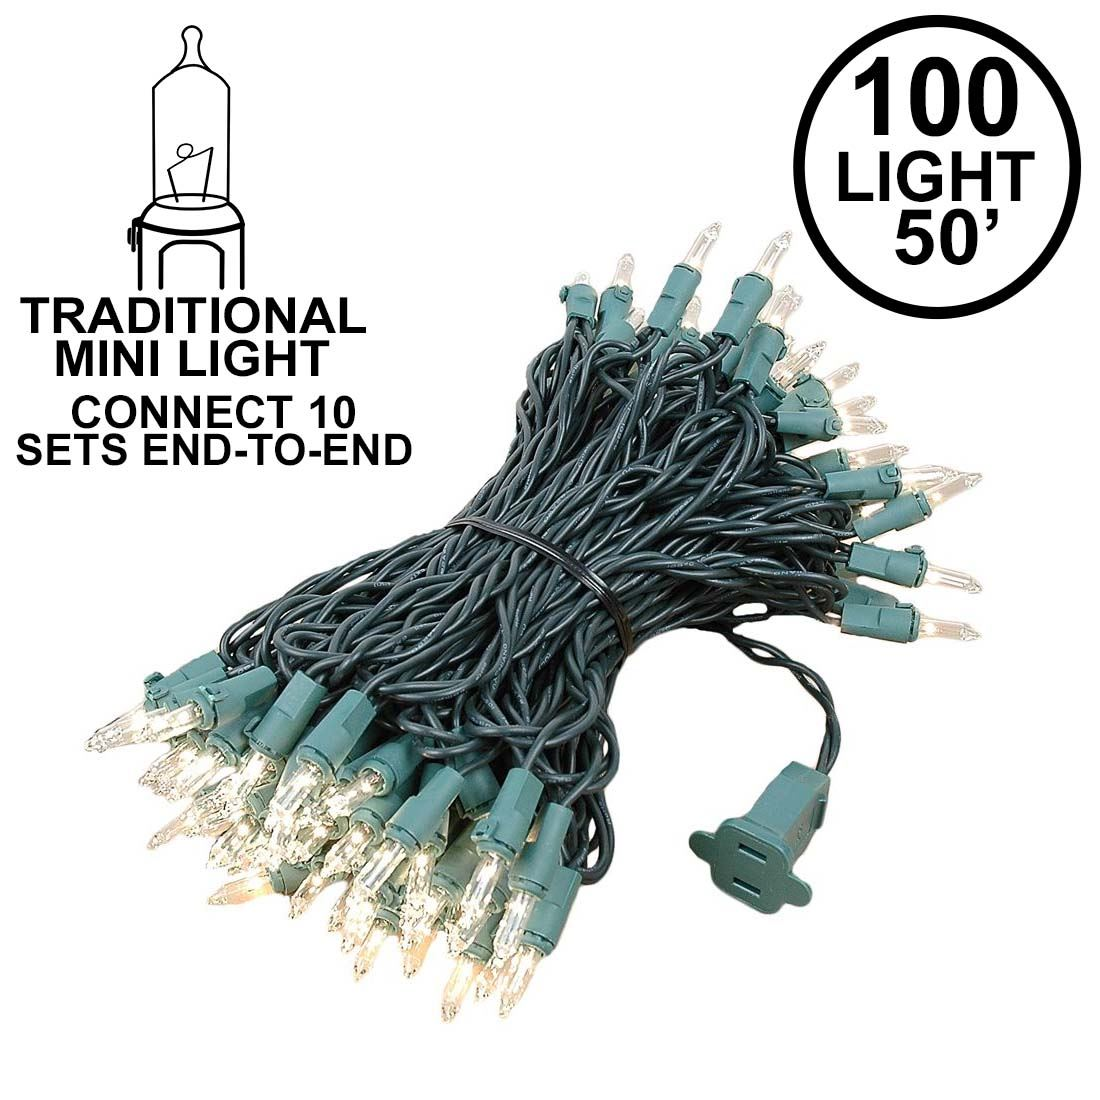 Picture of Connect 10 Clear Christmas Mini Lights 100 Light 50 Feet Long